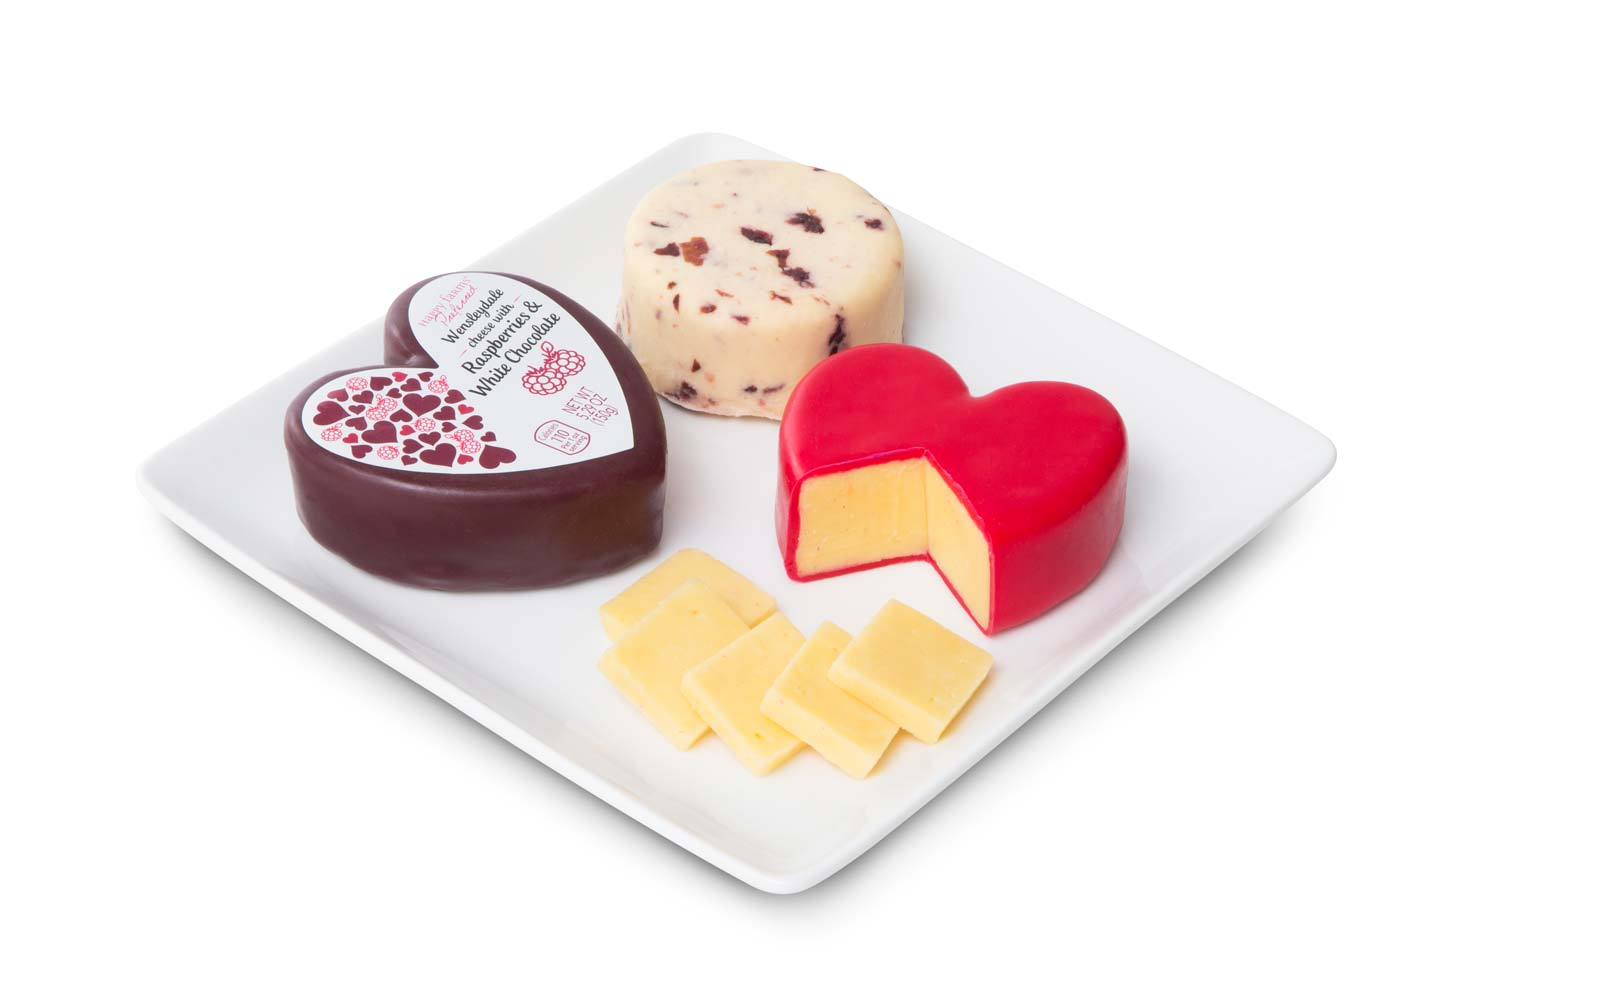 Aldi Is Releasing a Heart-shaped Cheese Box for Valentine's Day